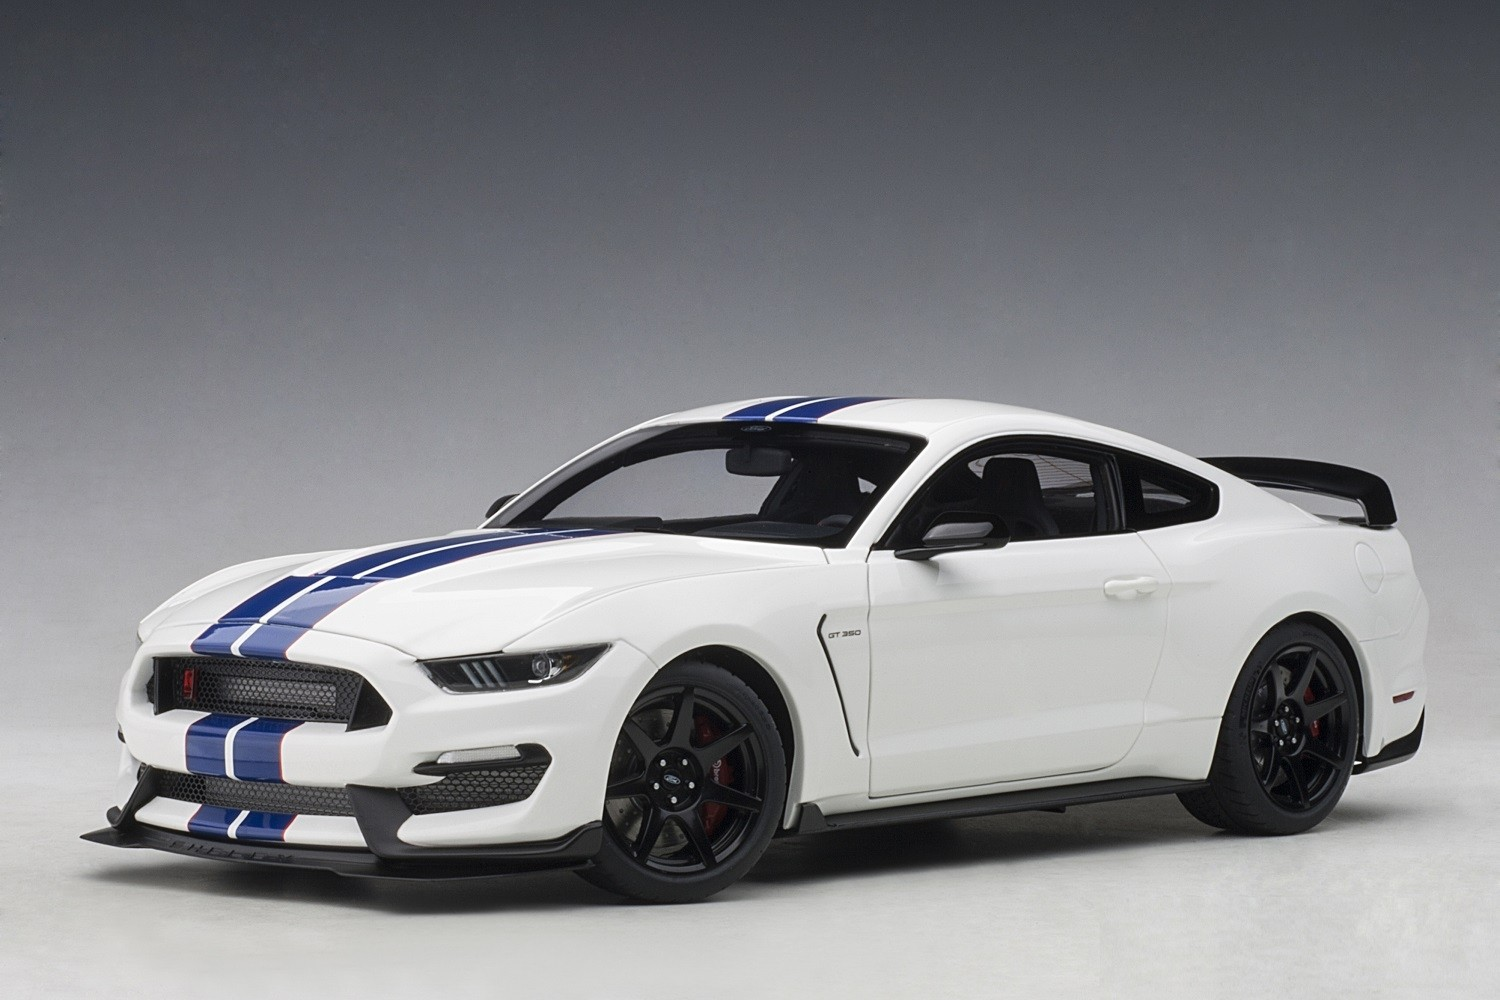 White Mustang Gt >> Ford Shelby Mustang Gt 350r Oxford White W Lightning Blue Stripes Autoart 72931 Scale 1 18